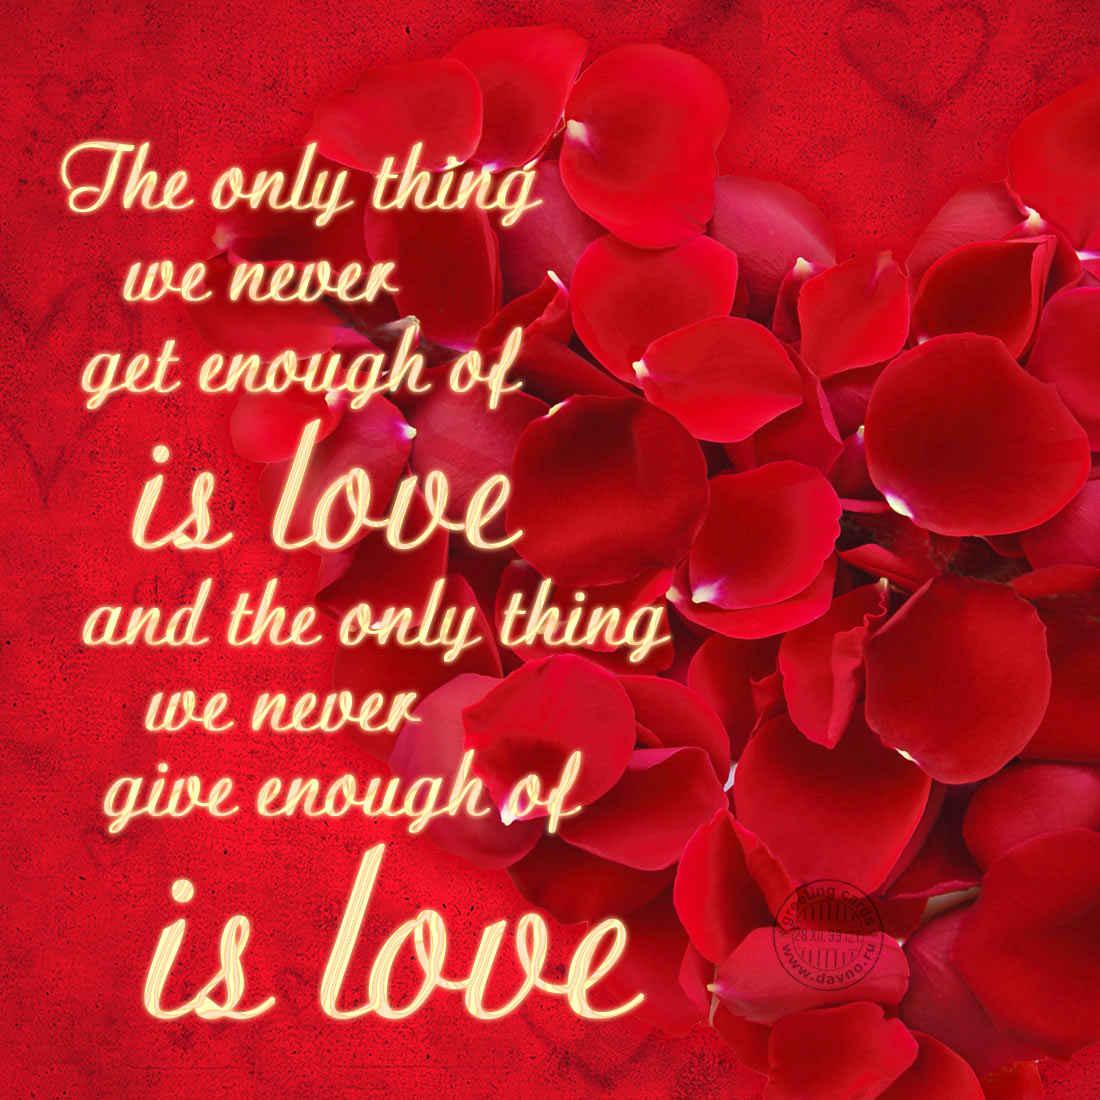 The only thing we  never get enouth of is LOVE